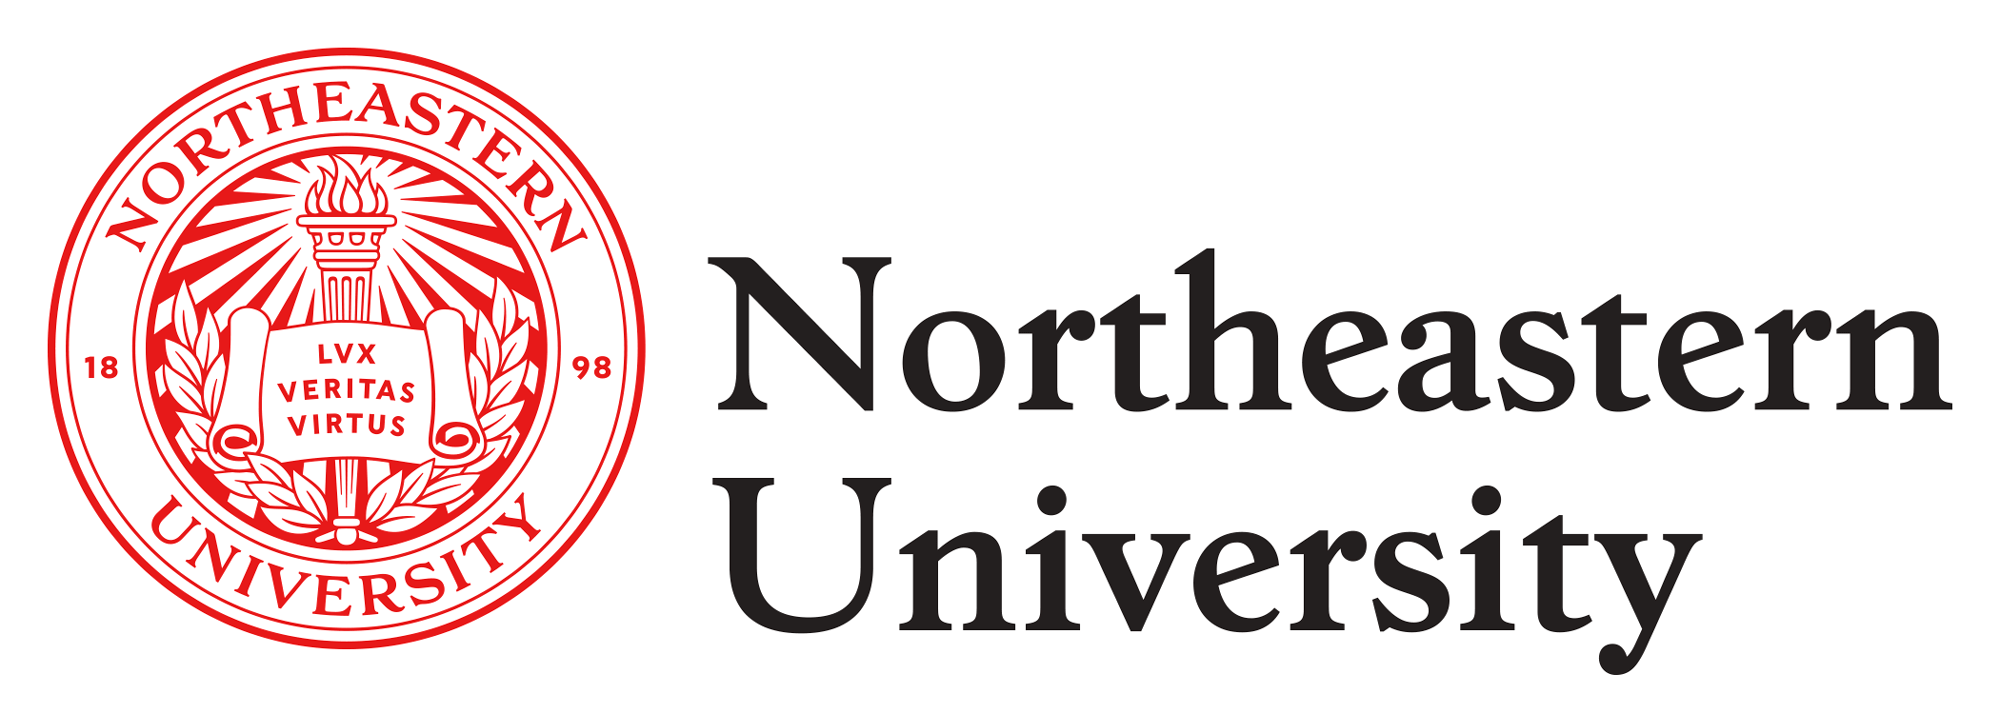 northeastern-universitylogo